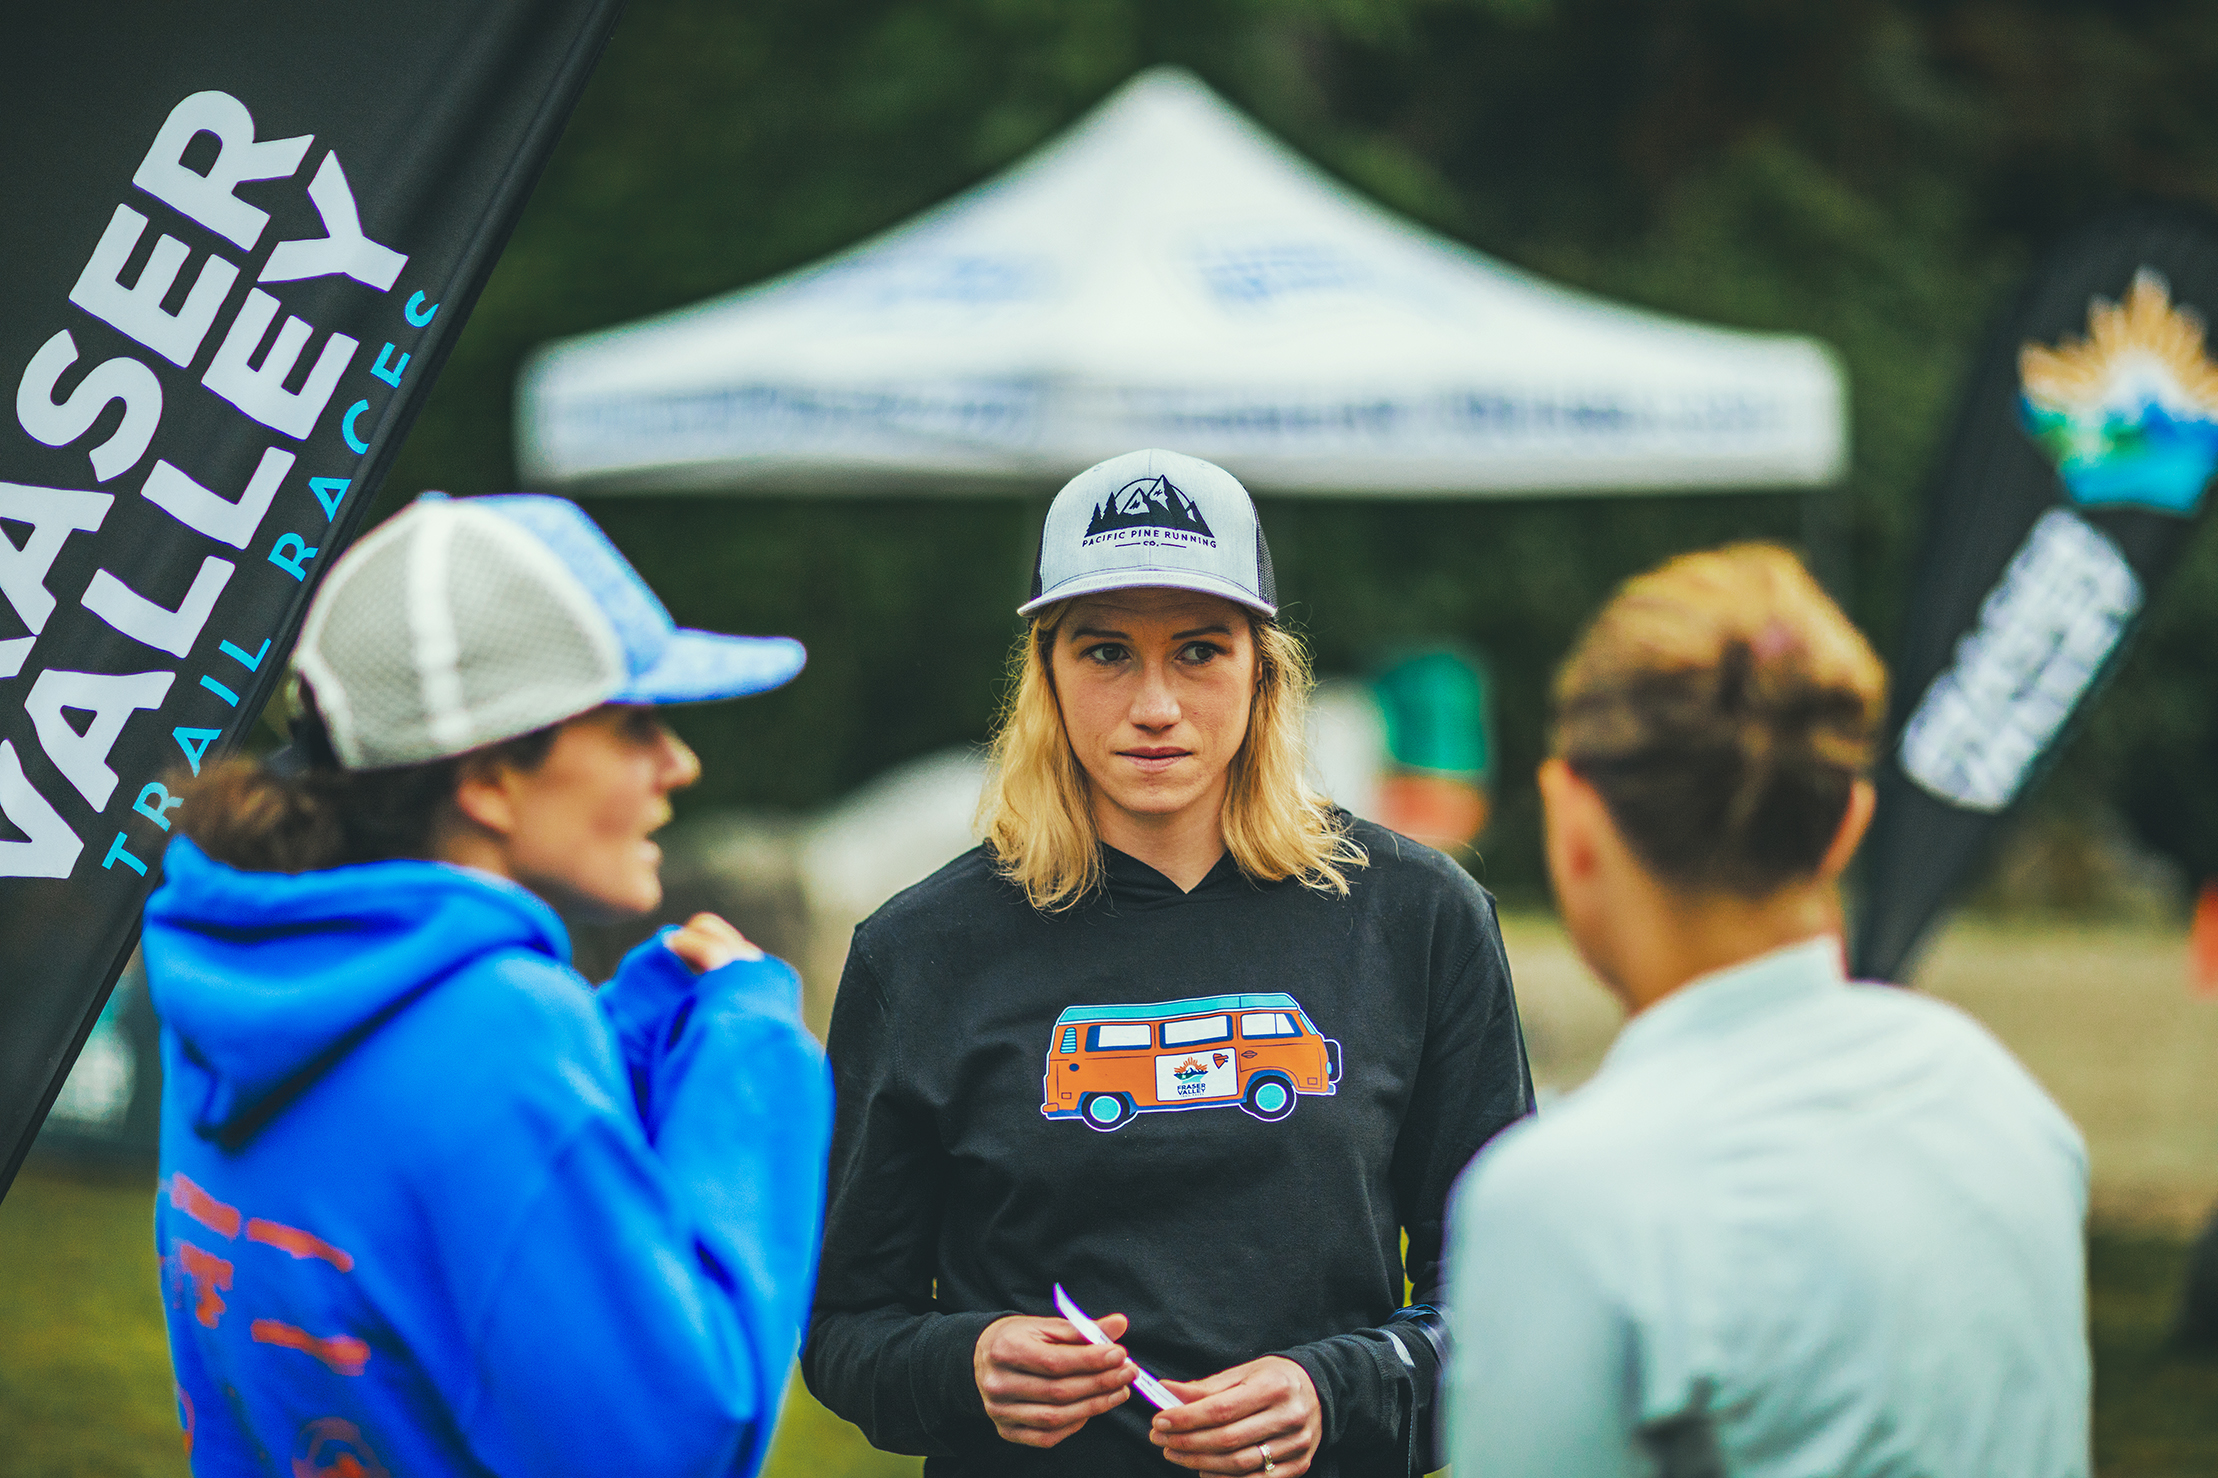 Fraser Valley Trail Races - Bear Mountain - IMG2_2401 by  Brice Ferre Studio - Vancouver Portrait Adventure and Athlete Photographer.jpg